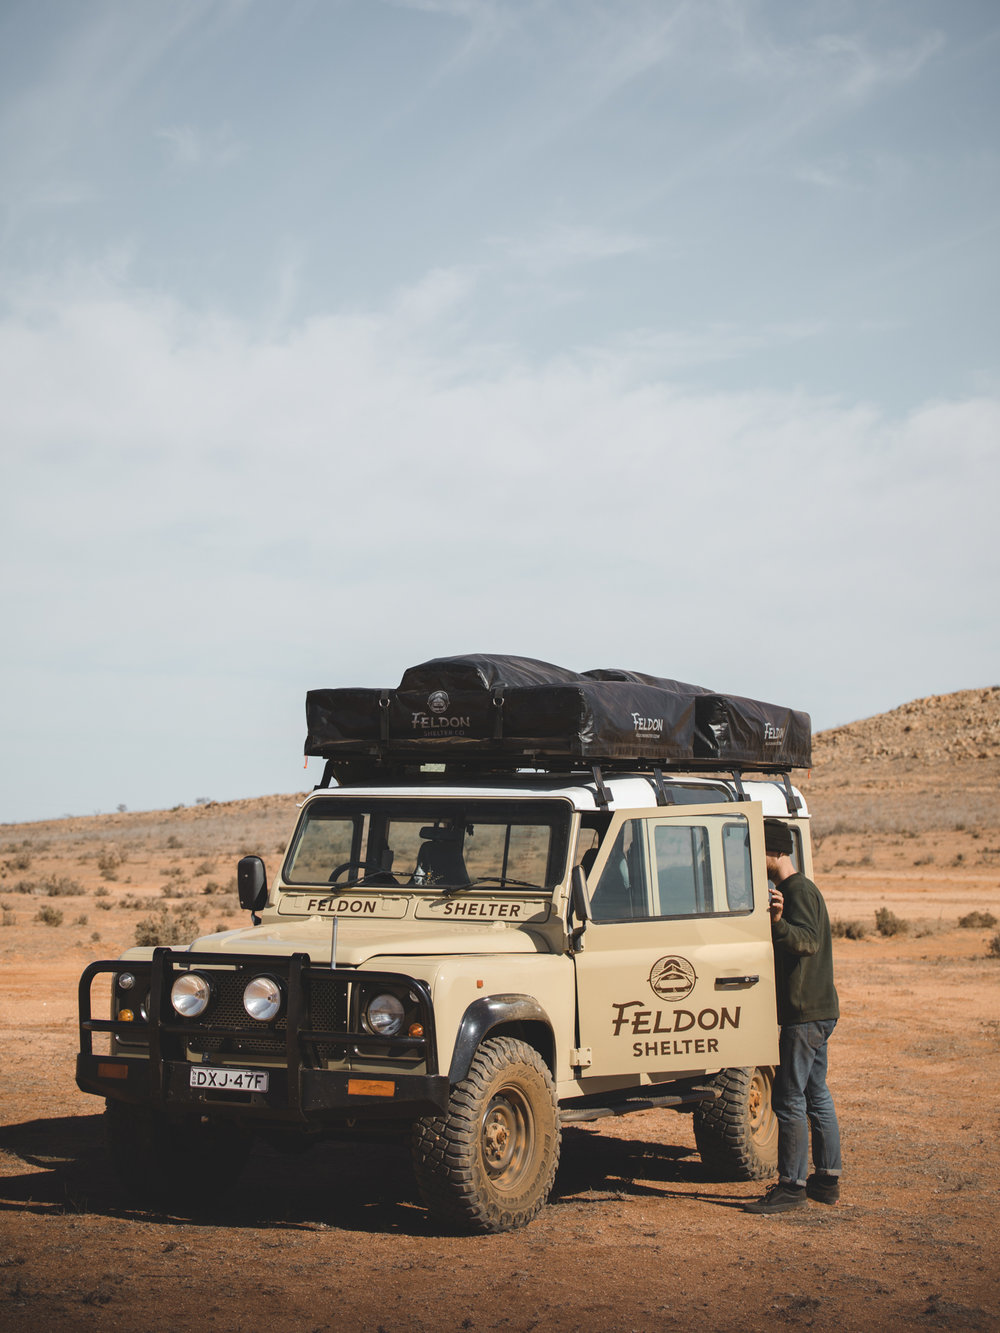 Custom built Land Rover Defender with two Feldon Shelter Roof Top Tents.